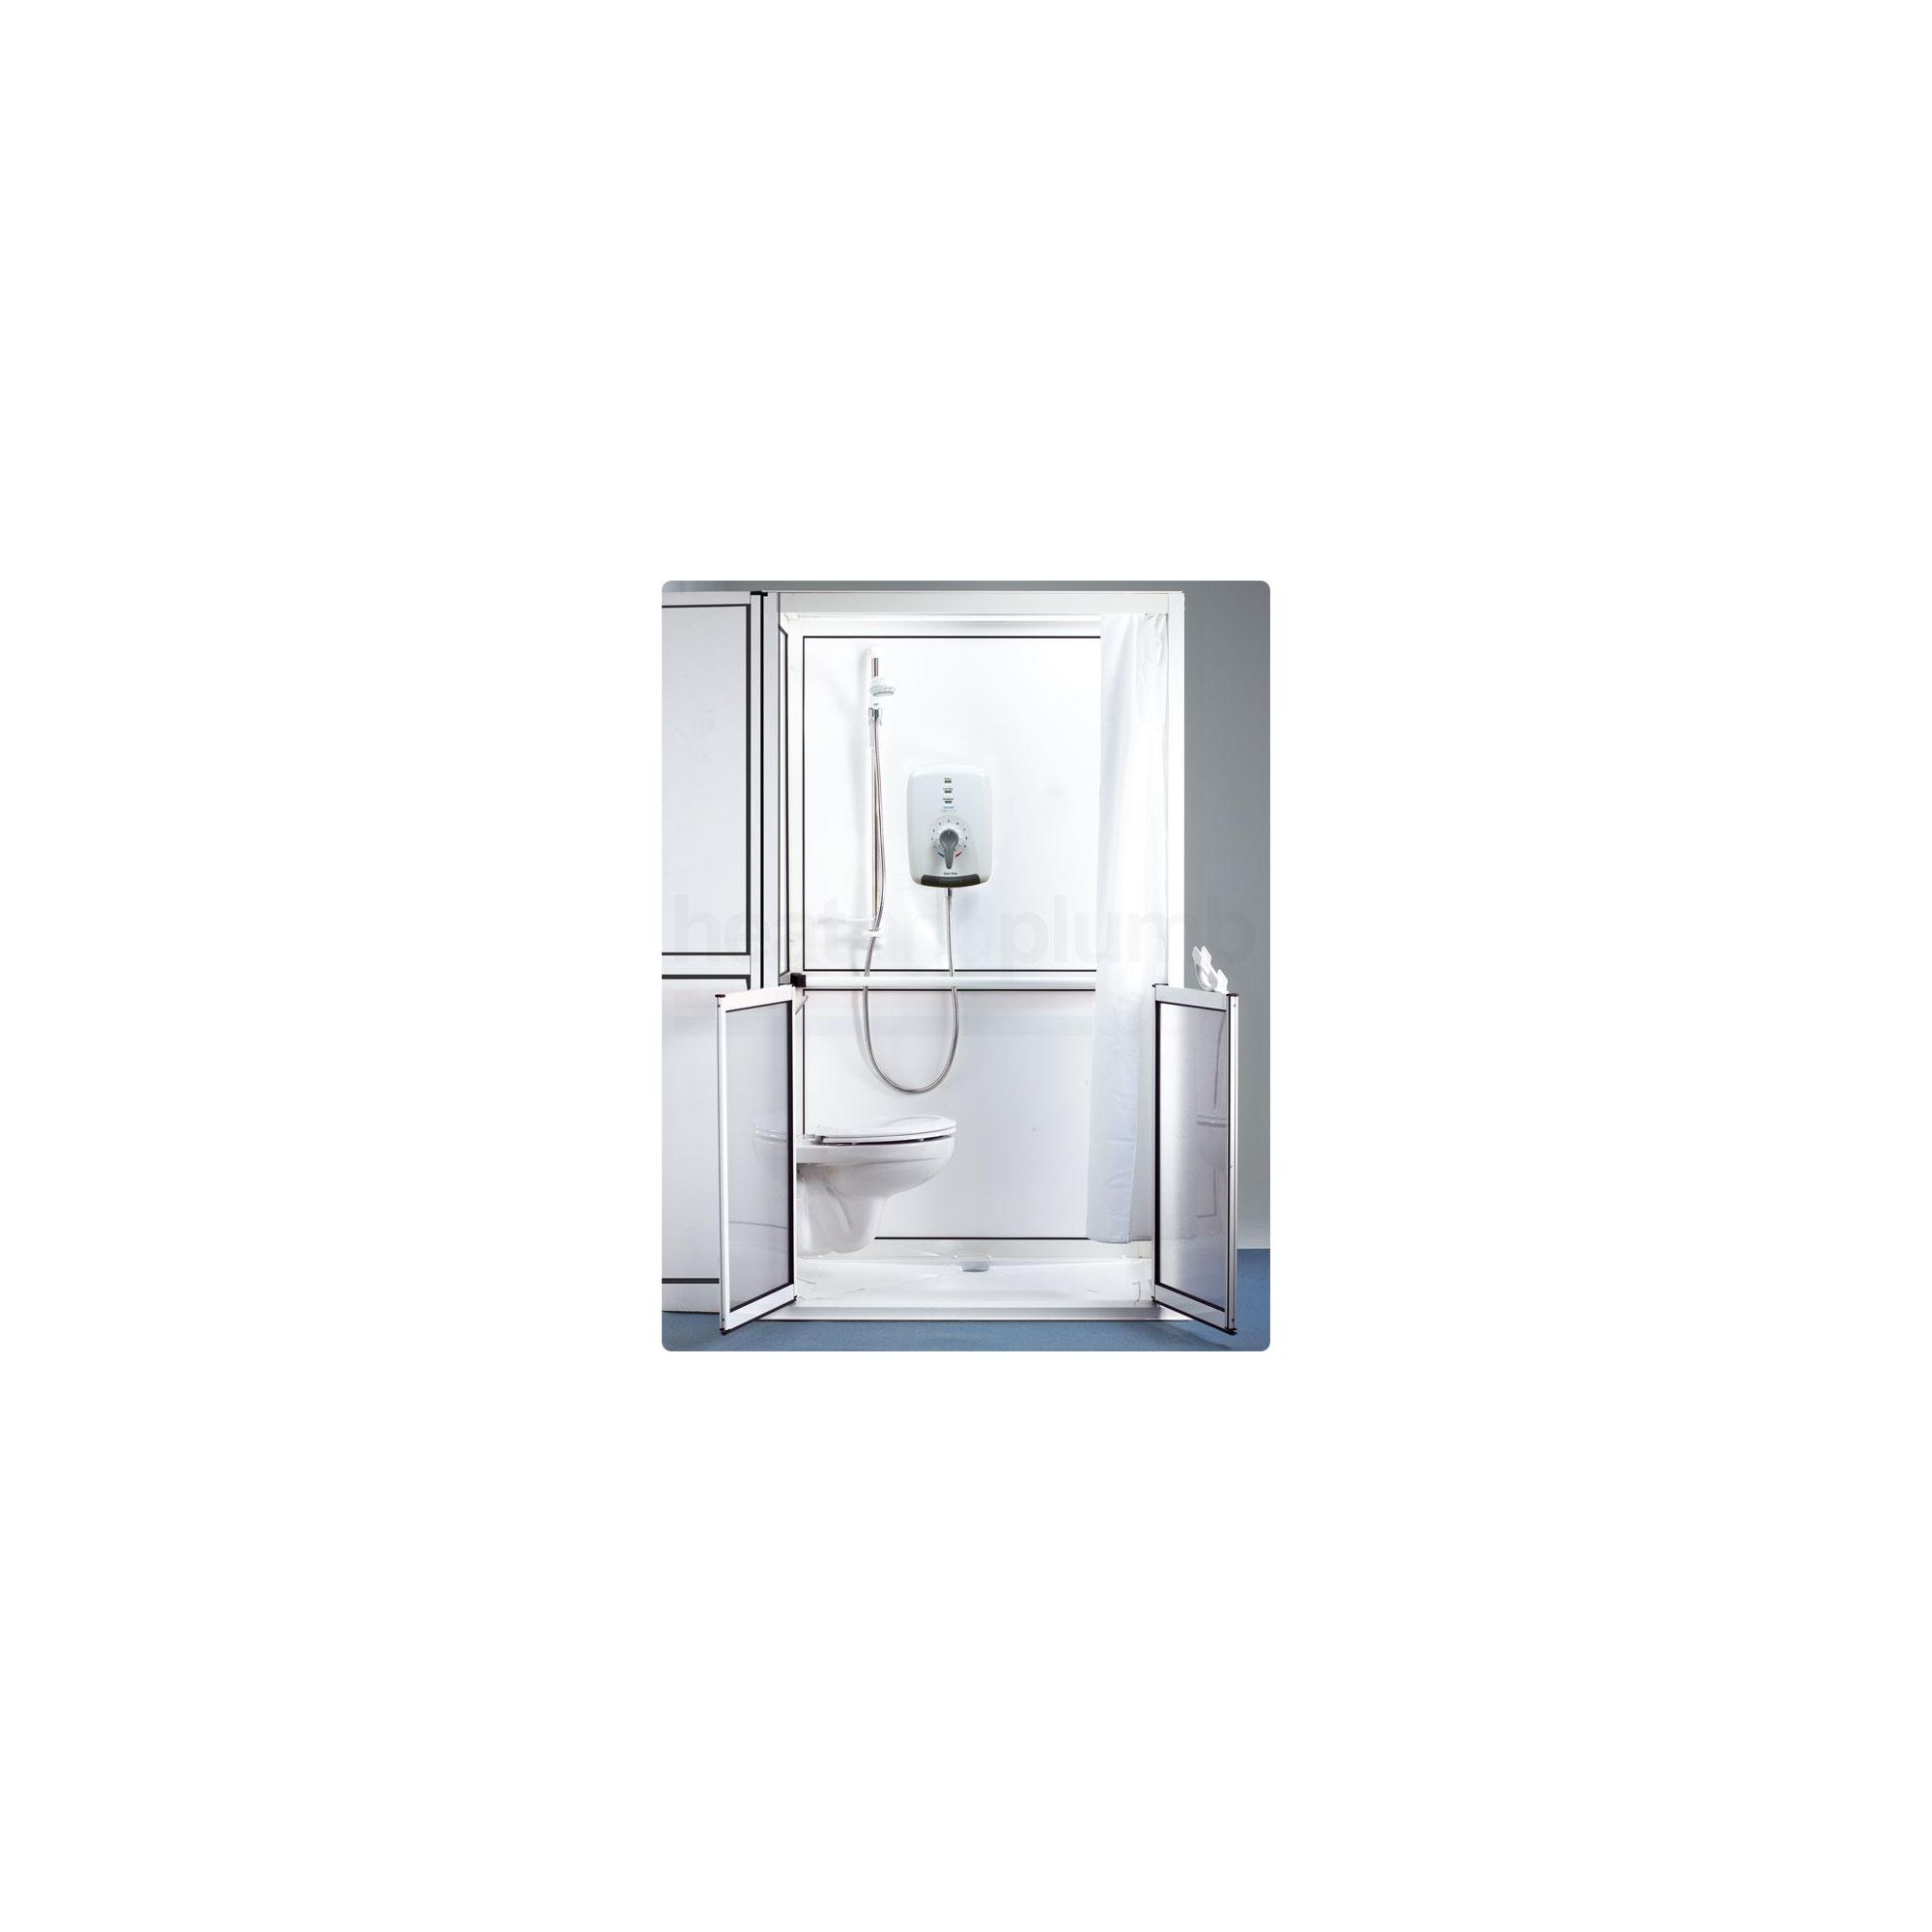 AKW ShowerLoo Shower Cubicle 1200mm x 700mm at Tesco Direct